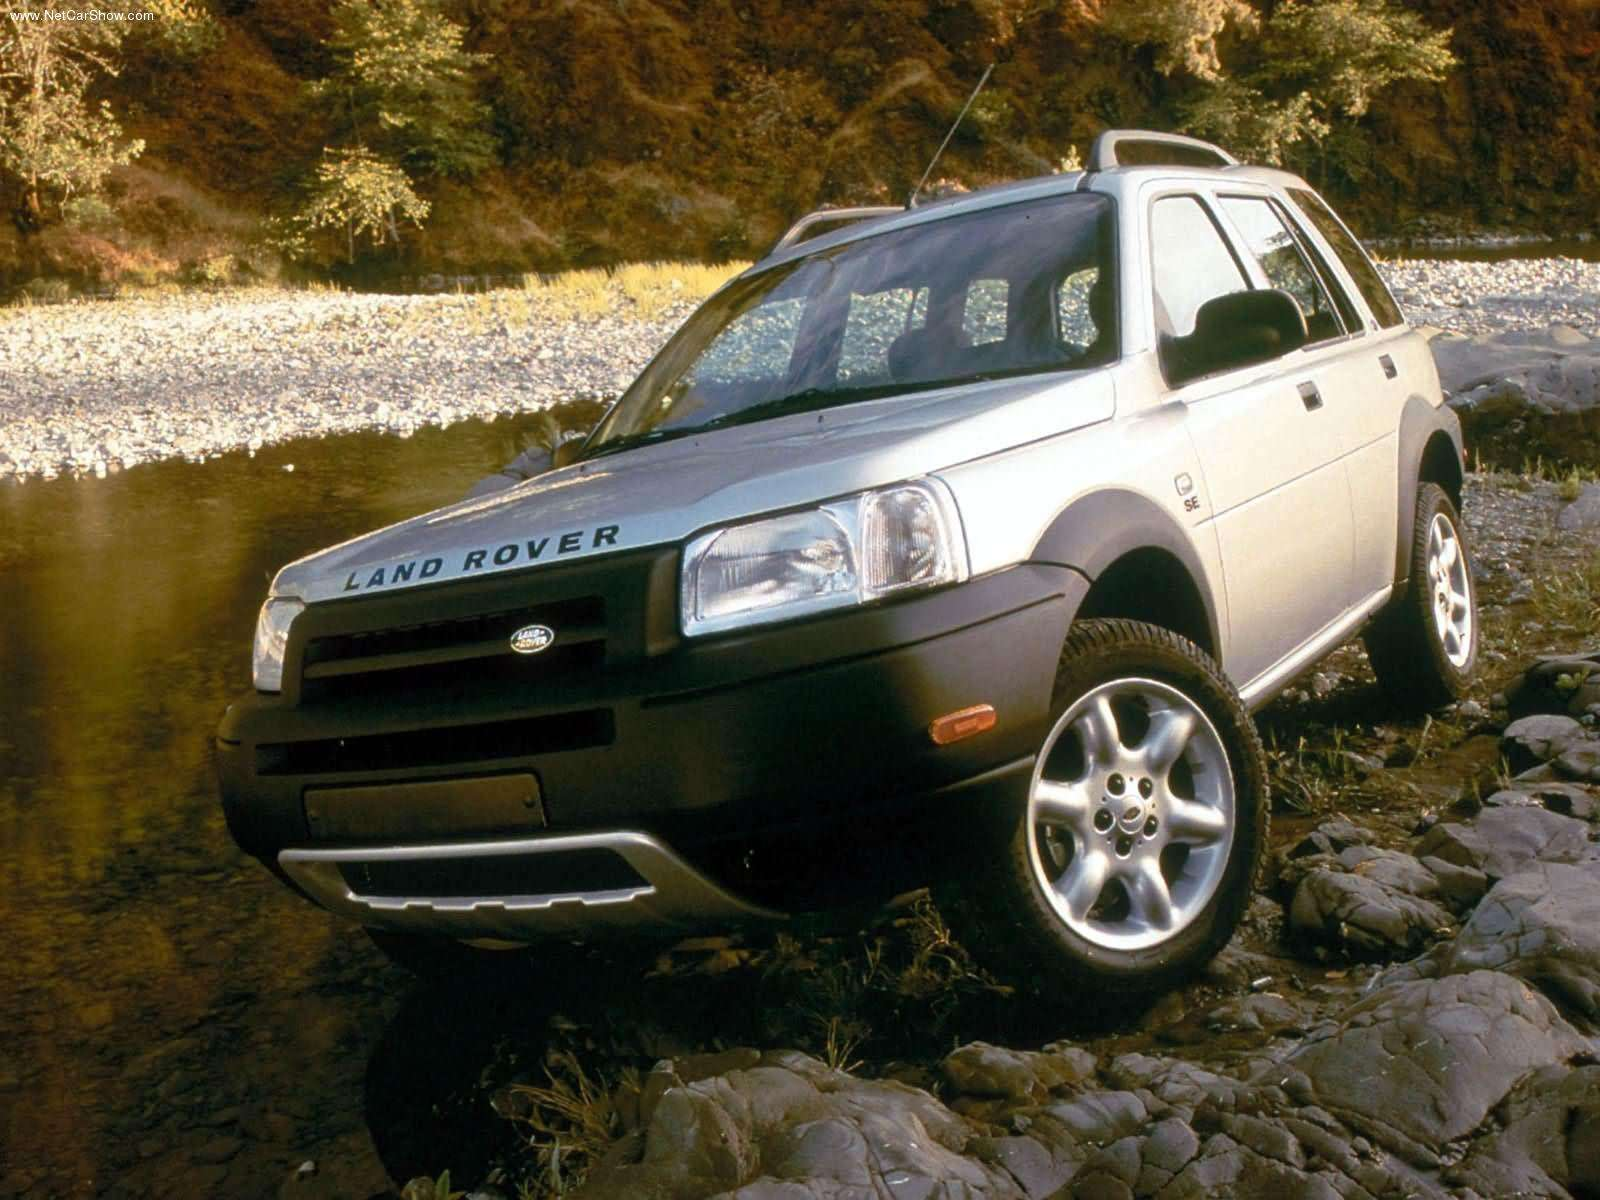 2002 land rover freelander image 10. Black Bedroom Furniture Sets. Home Design Ideas